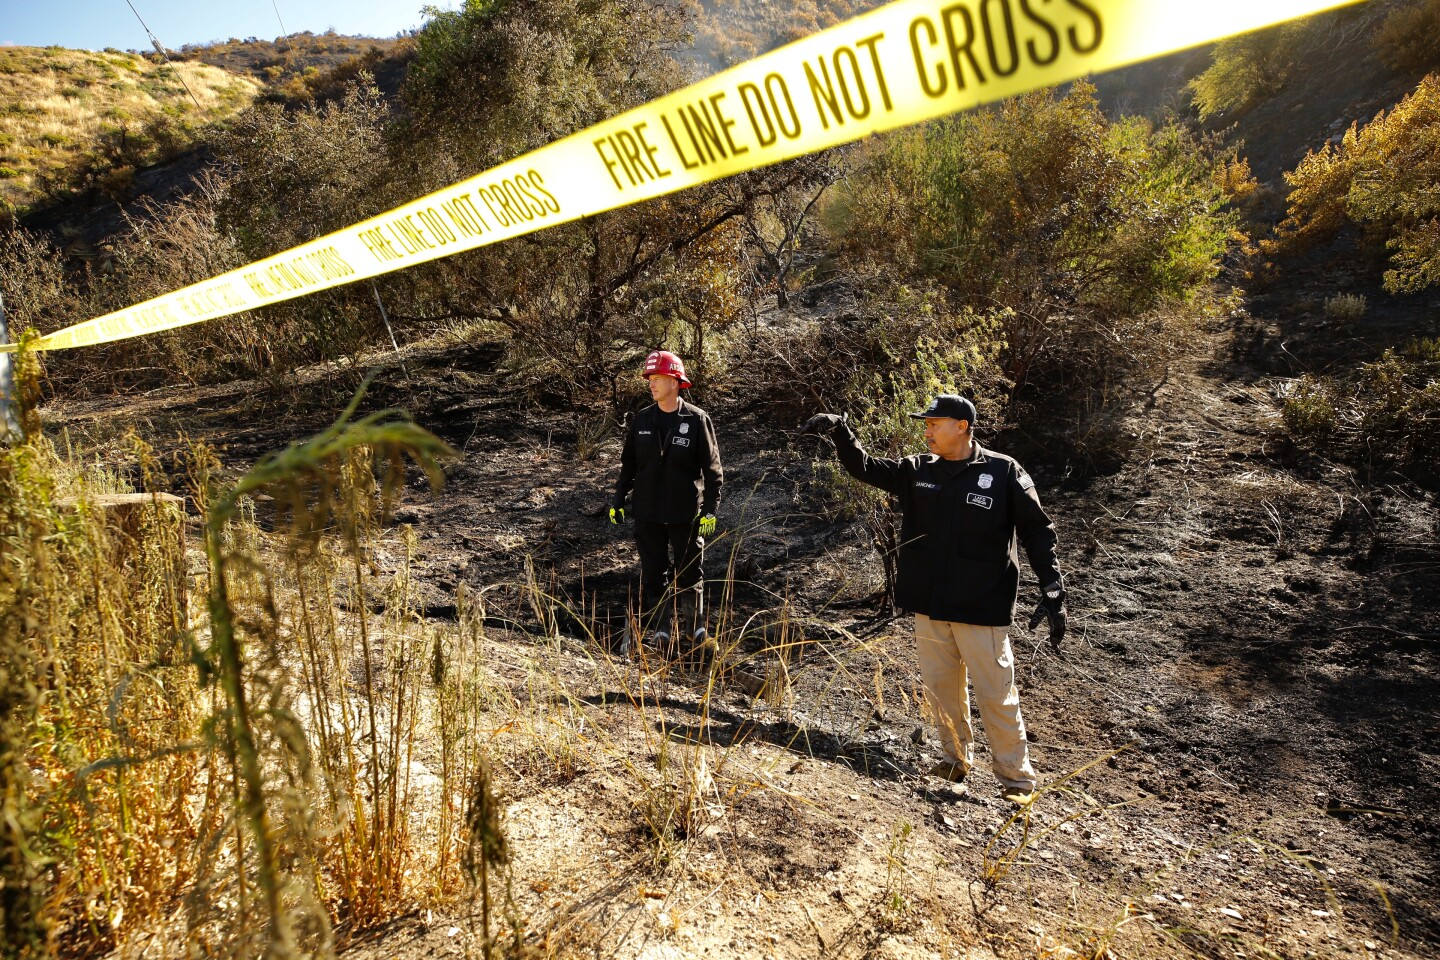 Los Angeles CA. JUNE 10, 2020 - LAFD Arson investigators Robert Williams, left, and Joe Sanchez investigate the origin of the brush fire that broke out after midnight in the Sepulveda Pass threatening homes of Bel Air Wednesday, June 10, 2020. Firefighters were able to stop forward movement of the blaze at about 50 acres. (Al Seib / Los Angeles Times)